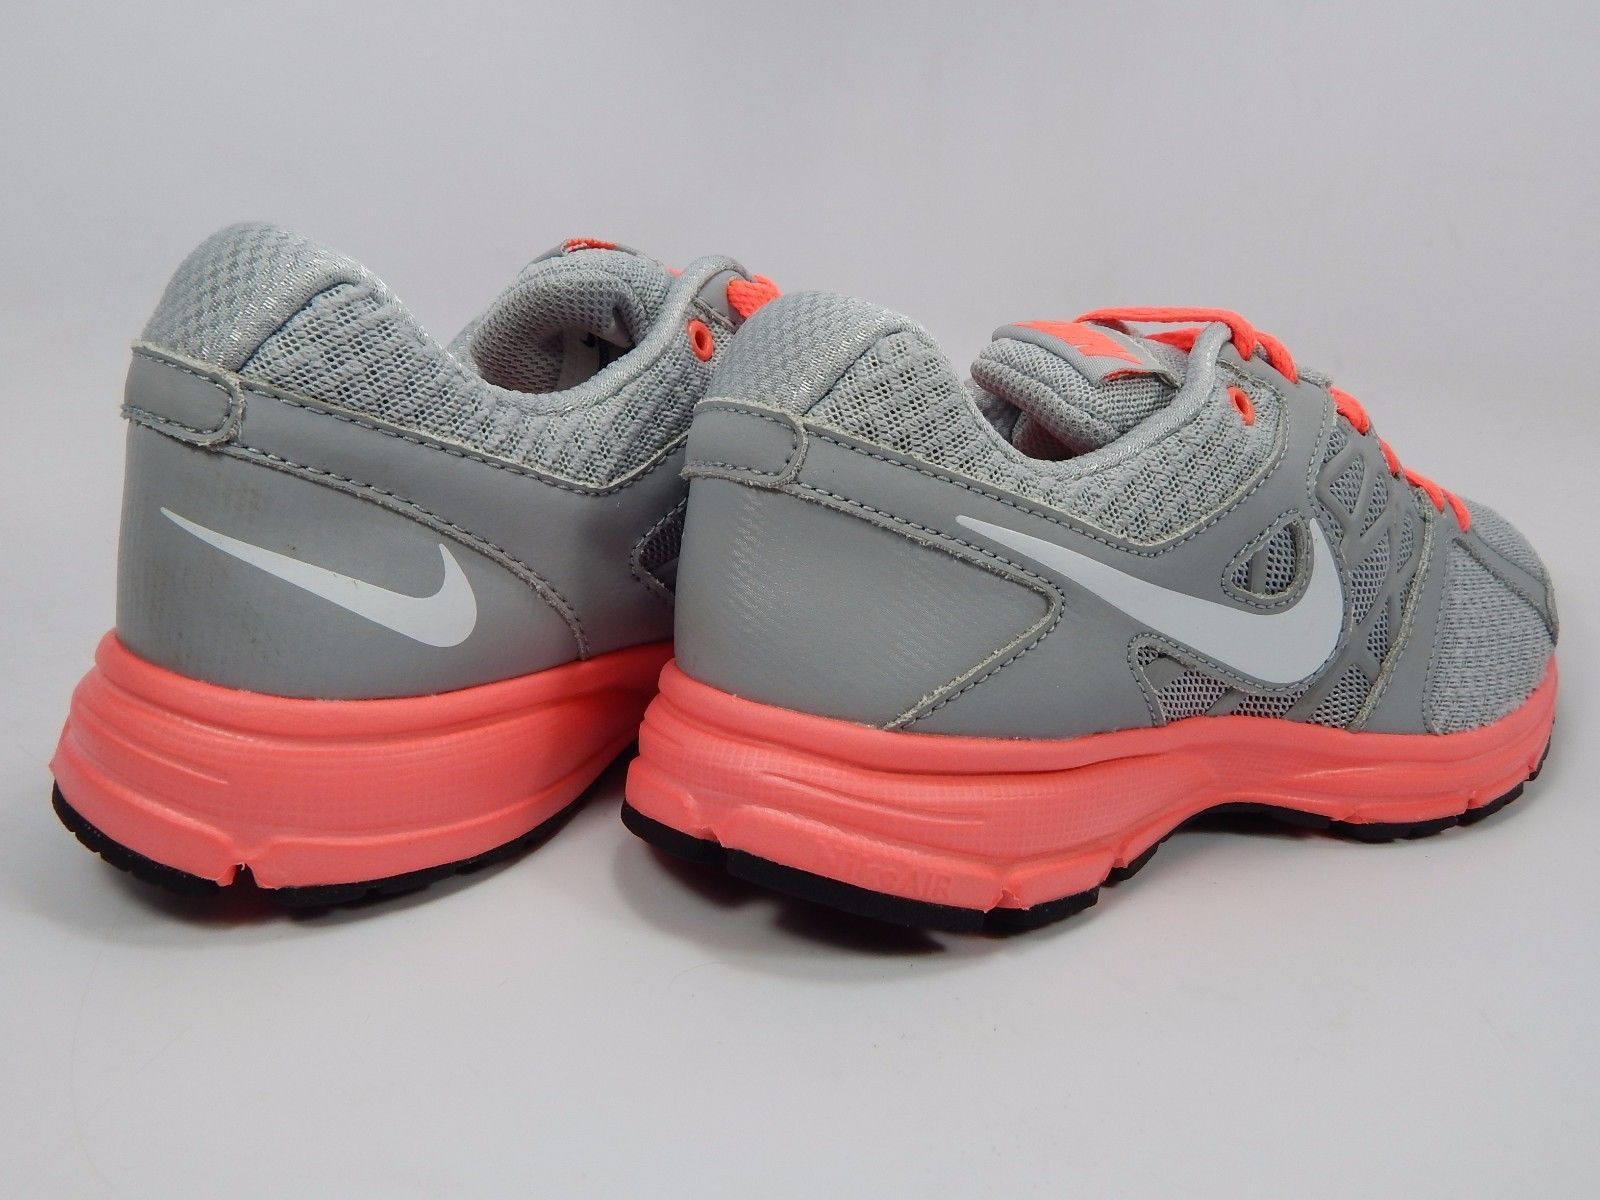 Nike Air Relentless 2 Women's Running Shoes Size US 7.5 M (B) EU 38.5 512083-002